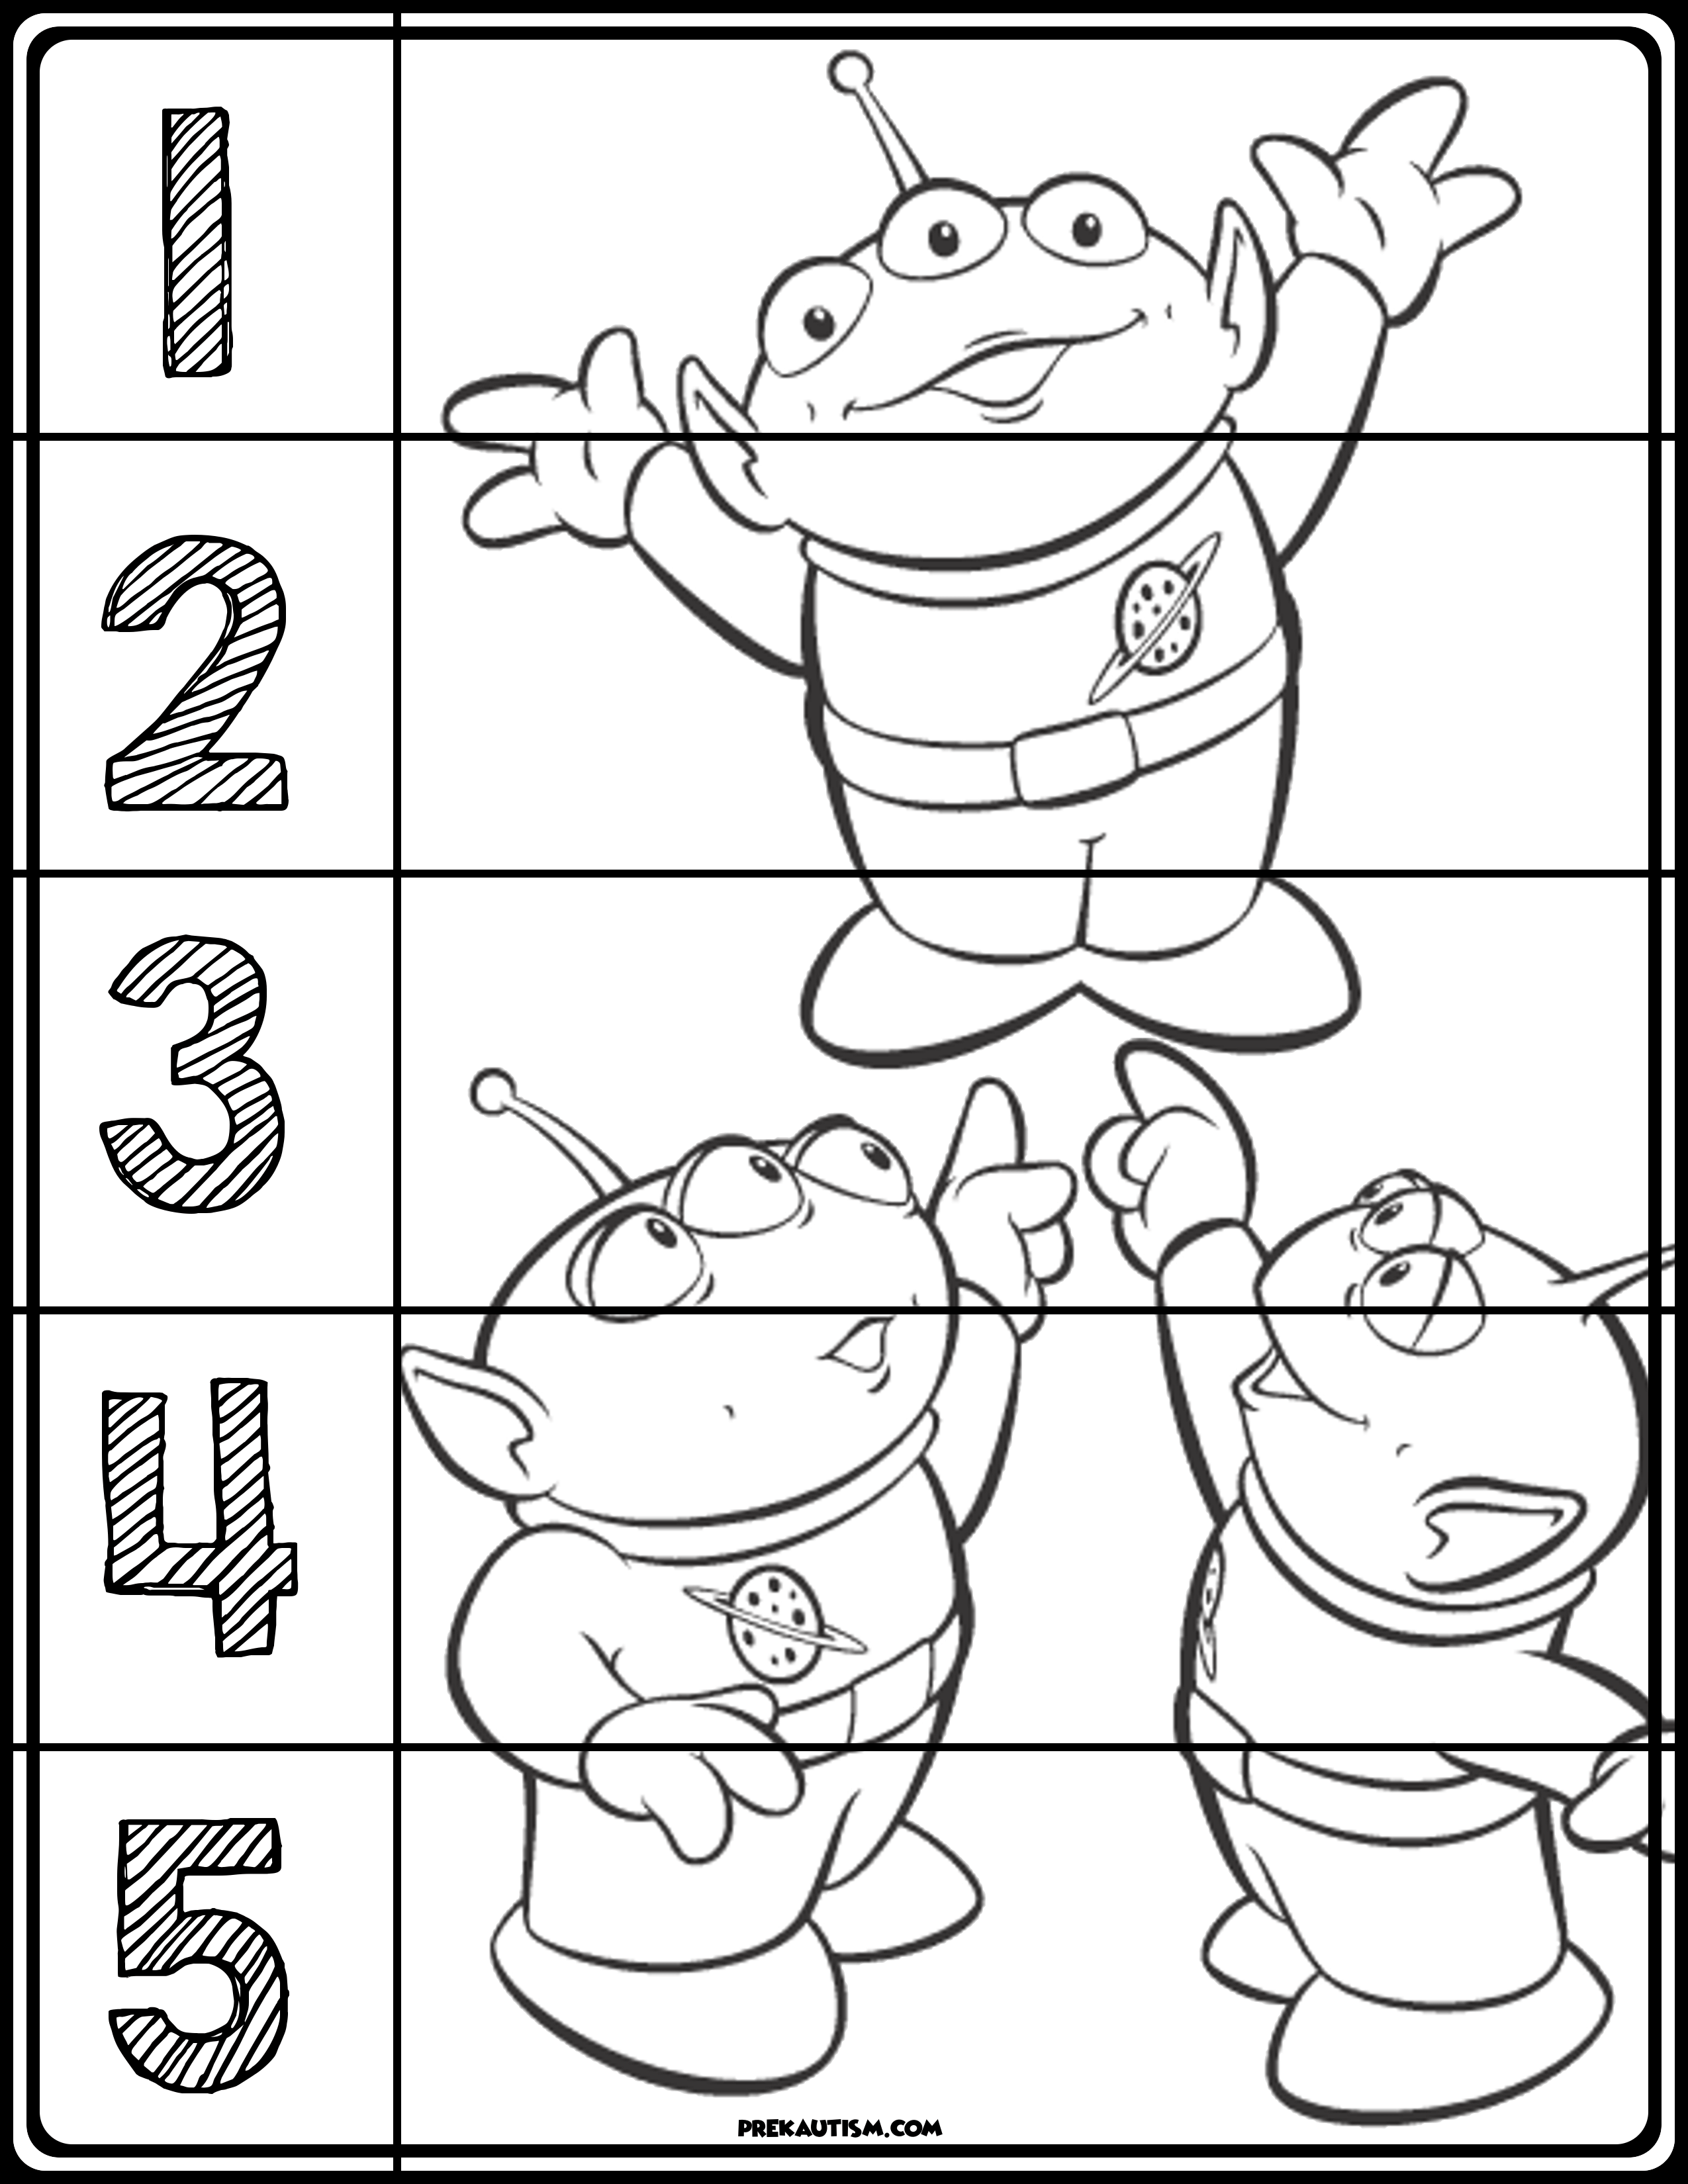 Toy Story Puzzles | Toy story, Number puzzles, Preschool ...